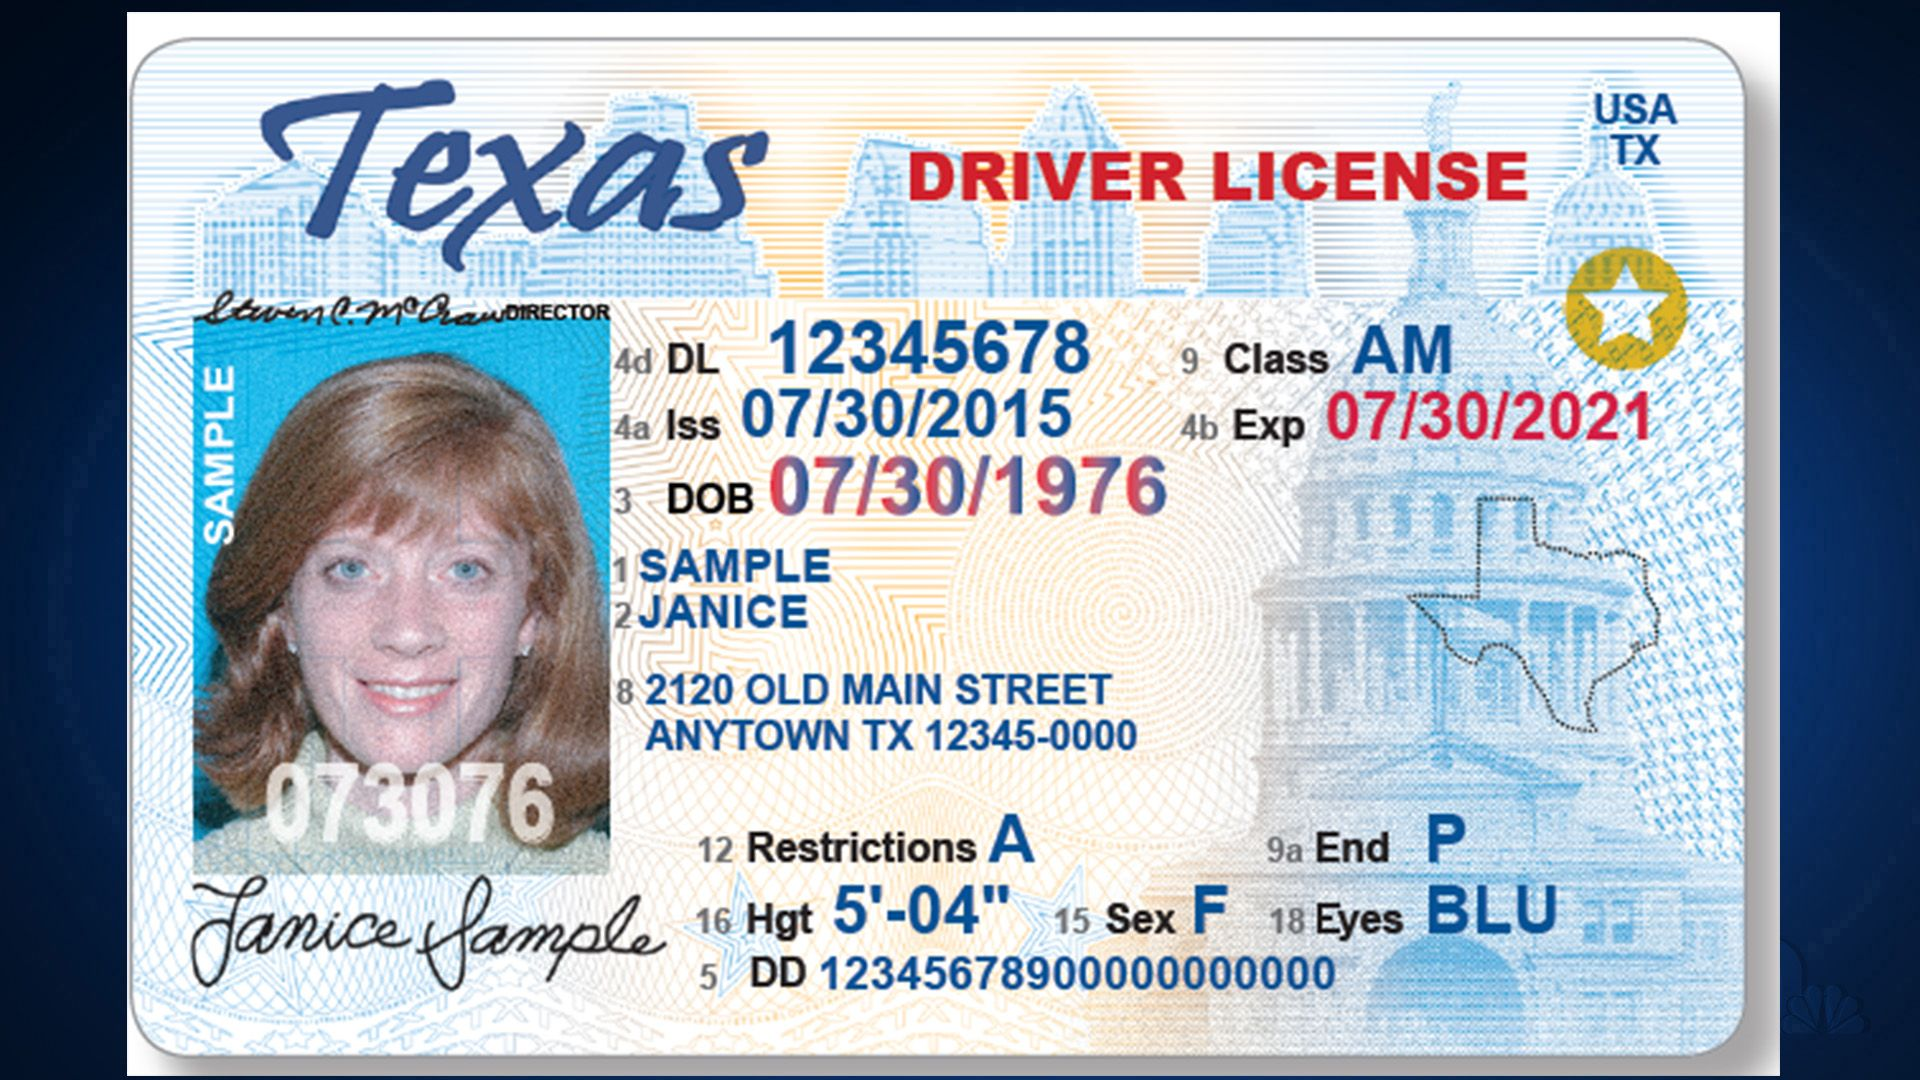 Contact us for get drivers license online. We are number